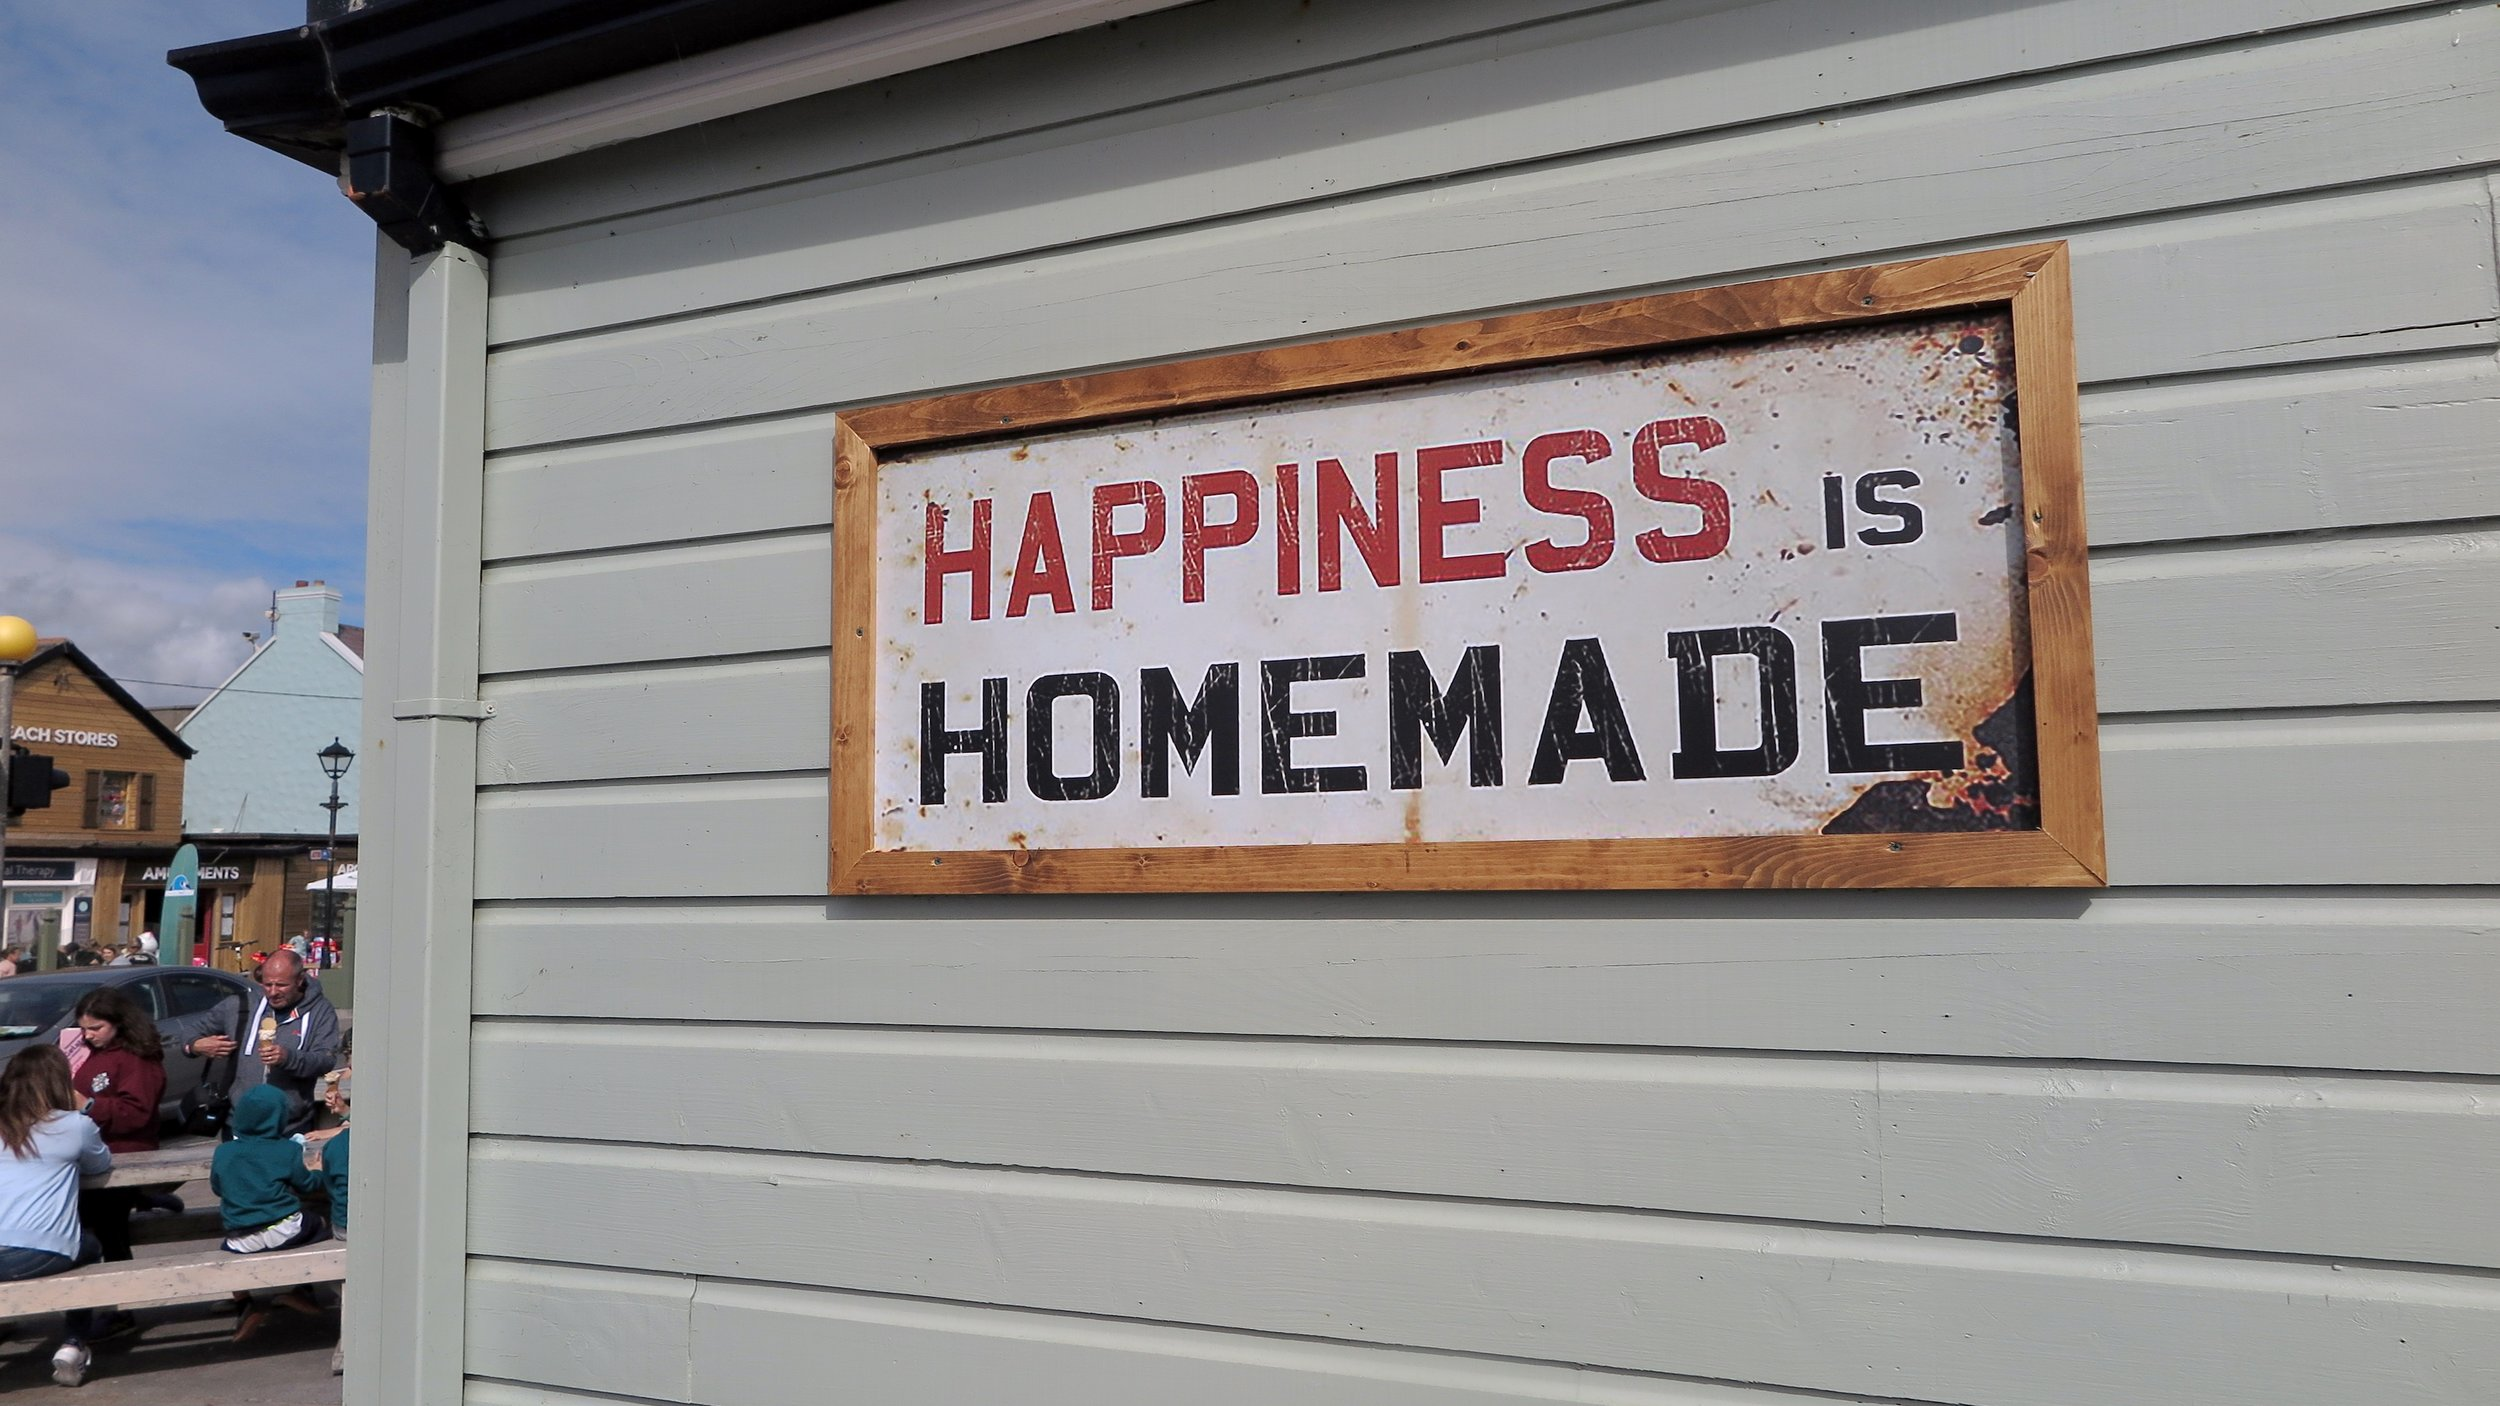 cool sign of happiness